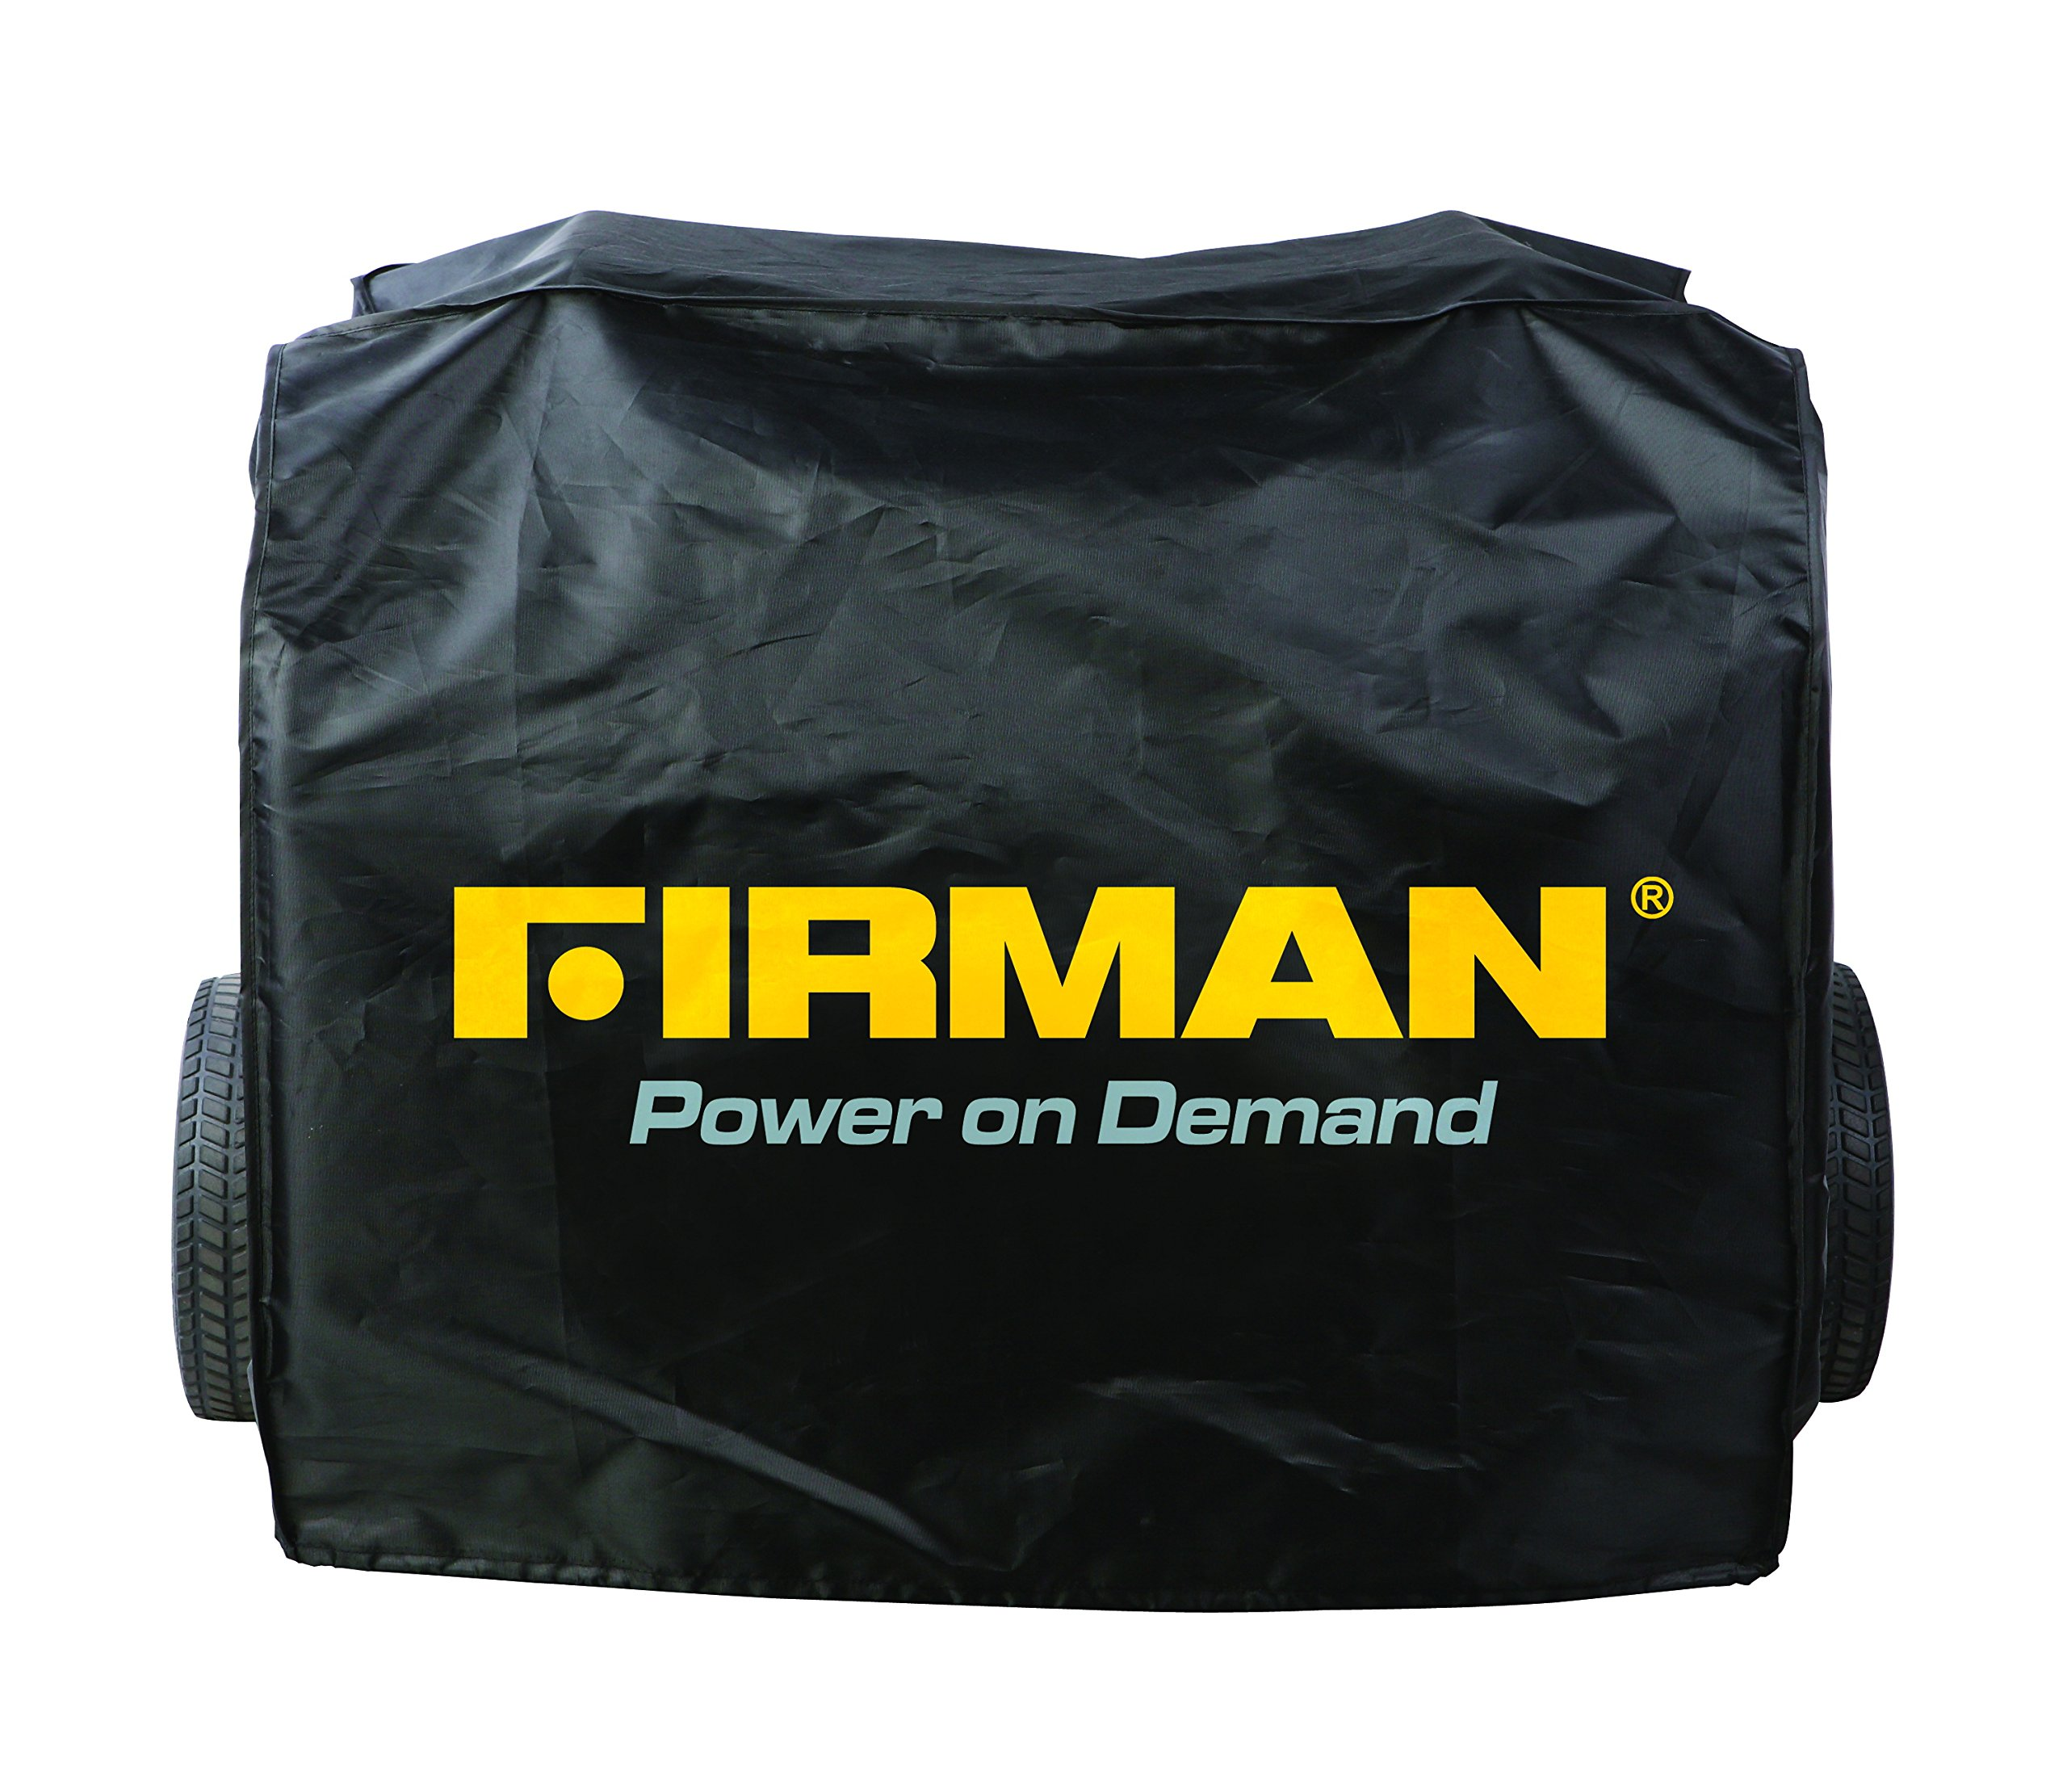 Firman Generators FG3000 Universal Weather-Proof Generator Cover for 4000 to 9000-watt Generators